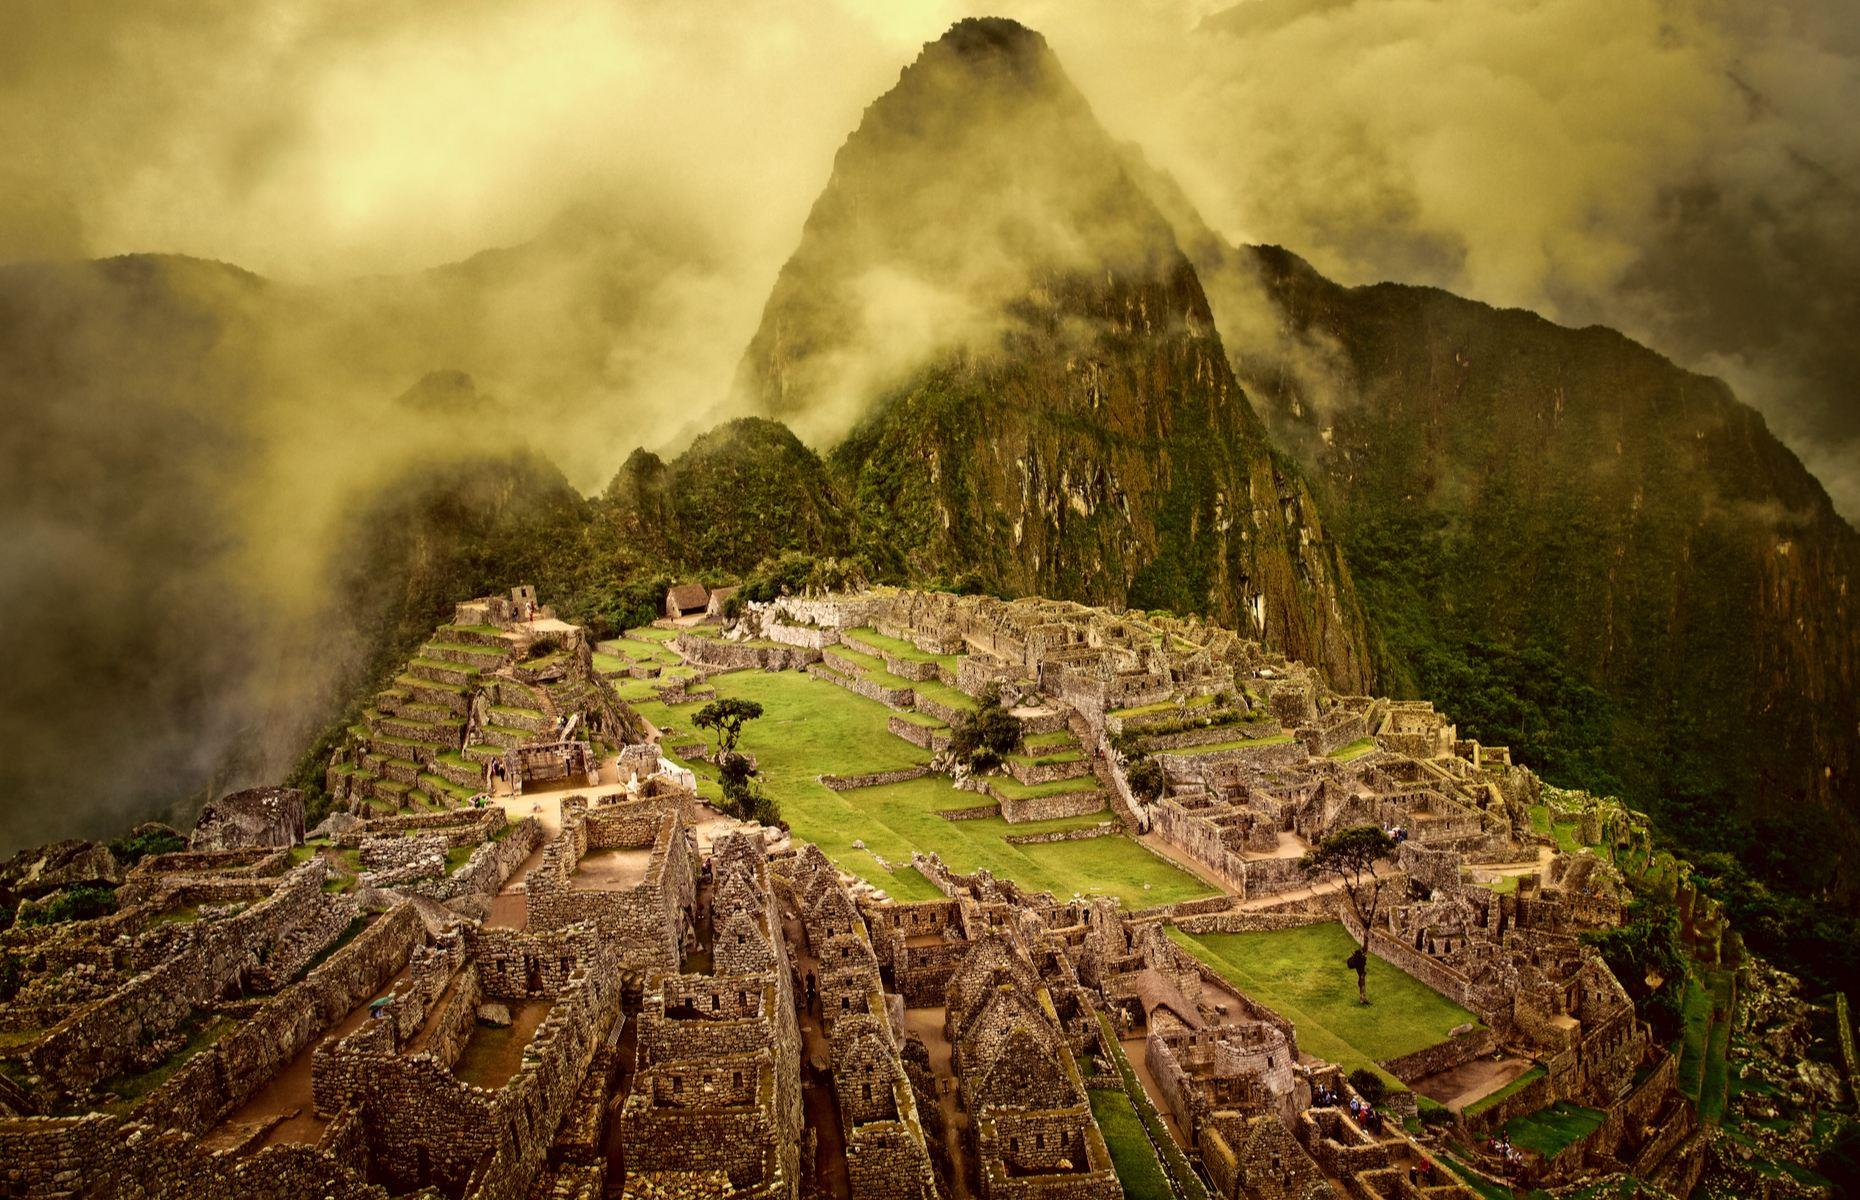 Slide 2 of 30: Built on an 8,200-foot (2,500m) ridge, the world's most famous Inca site has a spectacular setting amid the Andean peaks of southern Peru. The stonemasons who constructed this city in the 15th century didn't use mortar with the 150 buildings made from fine dry stone walls. Mystery still surrounds the purpose of the citadel, but it's thought to have been both a residential and religious center. The name Machu Picchu is interpreted as Old Mountain.